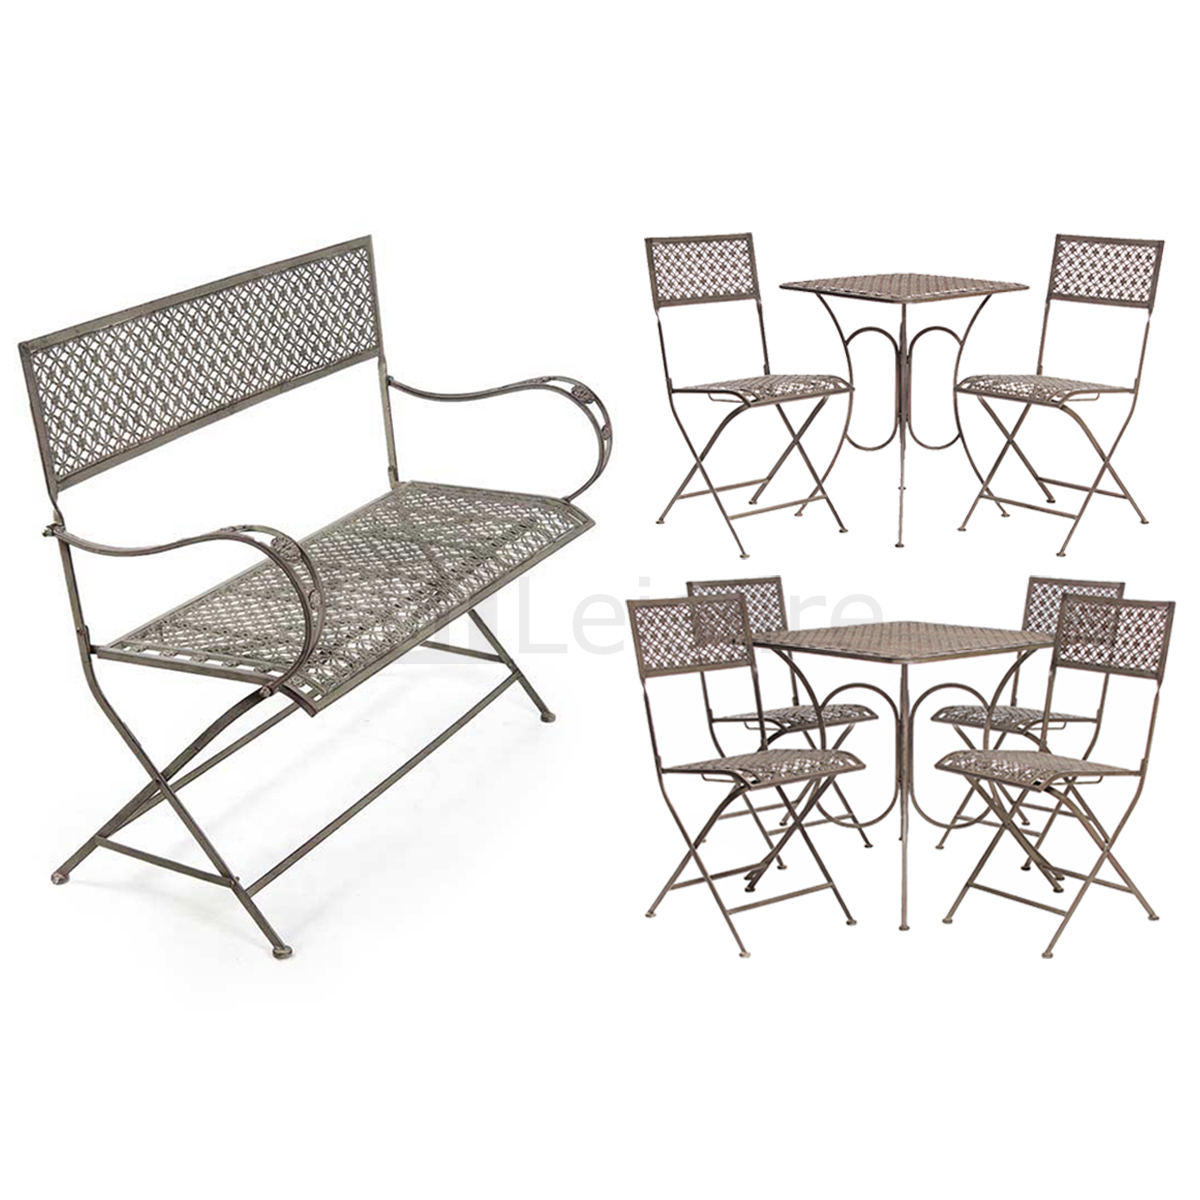 Vintage steel bistro furniture set garden table and chairs for Metal garden table and chairs